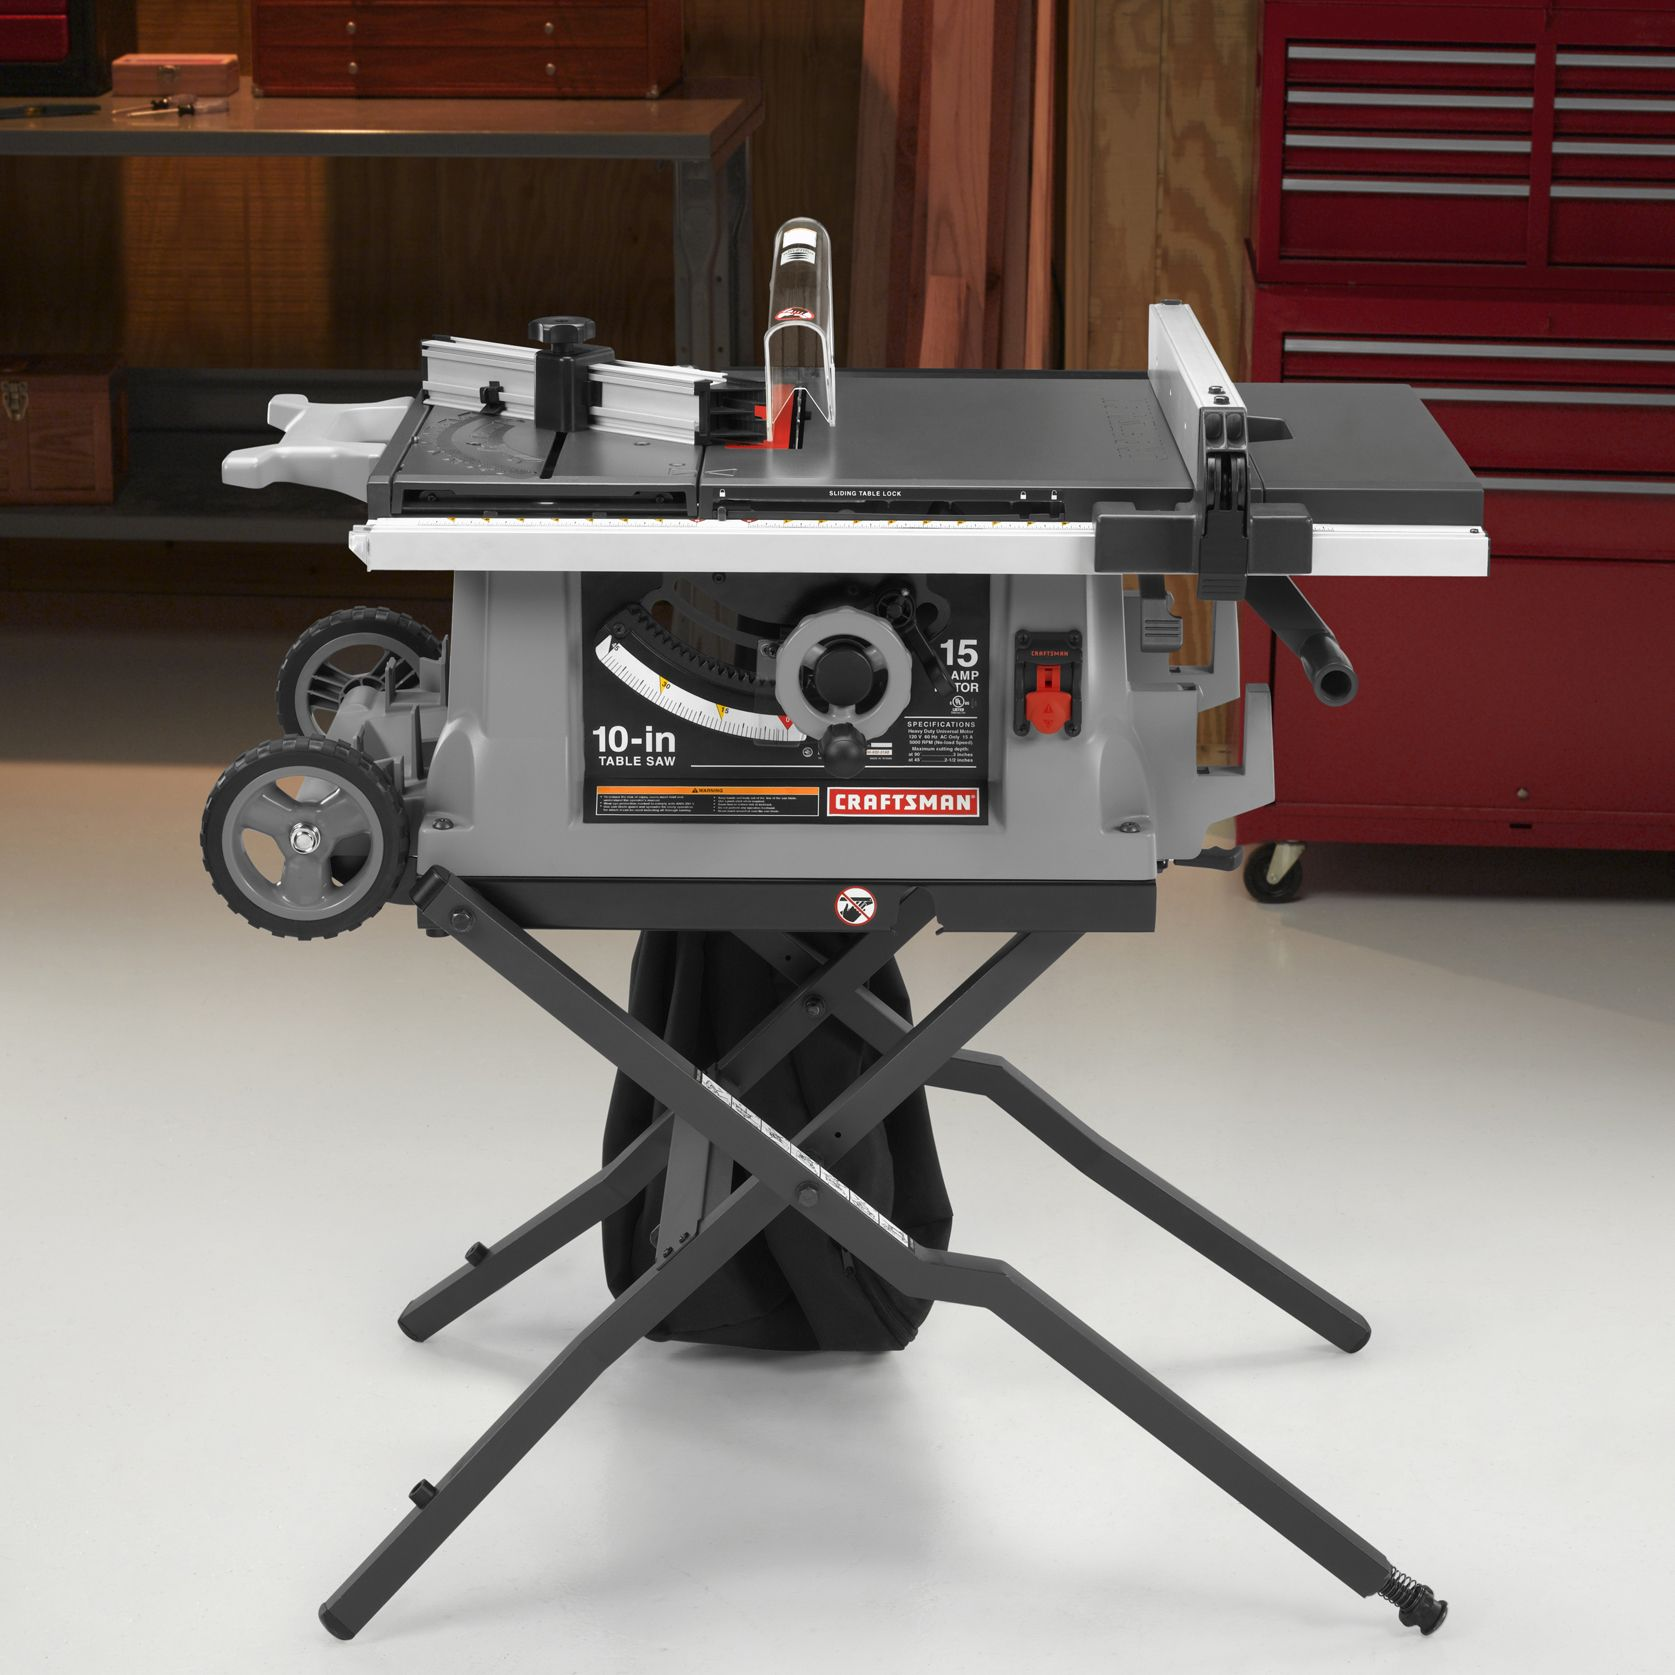 small resolution of spin prod 242069101 wid 200 hei 250 craftsman table saw parts model 315218060